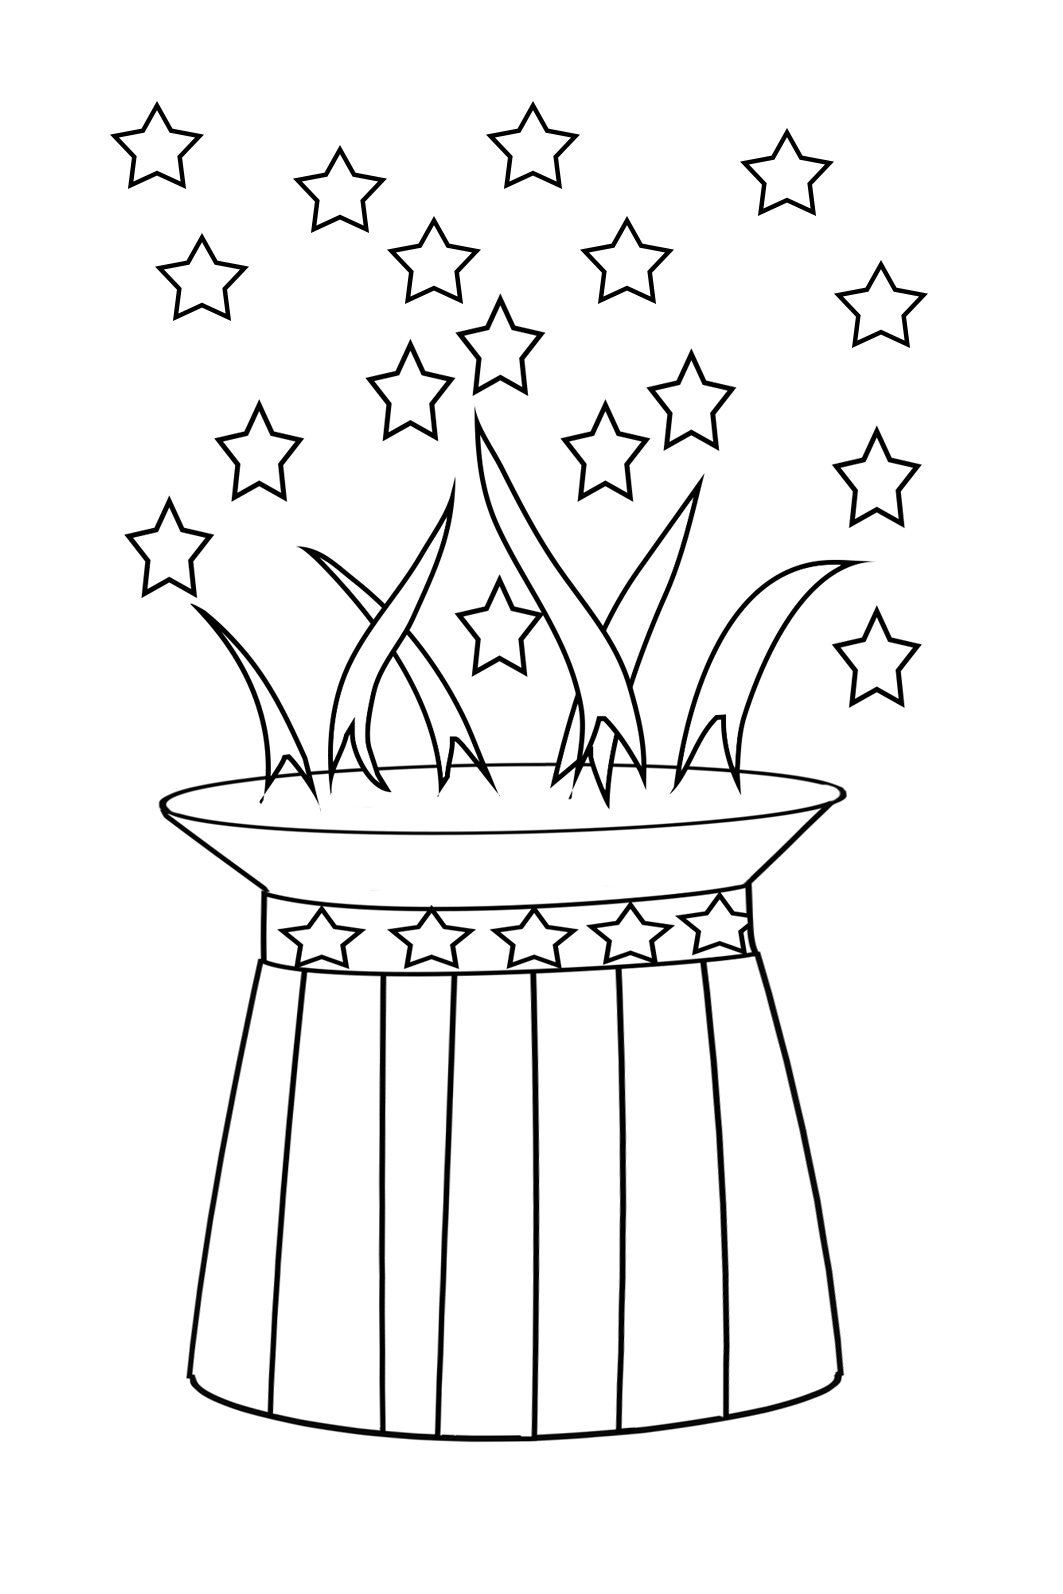 Coloring Pages For Independence Day